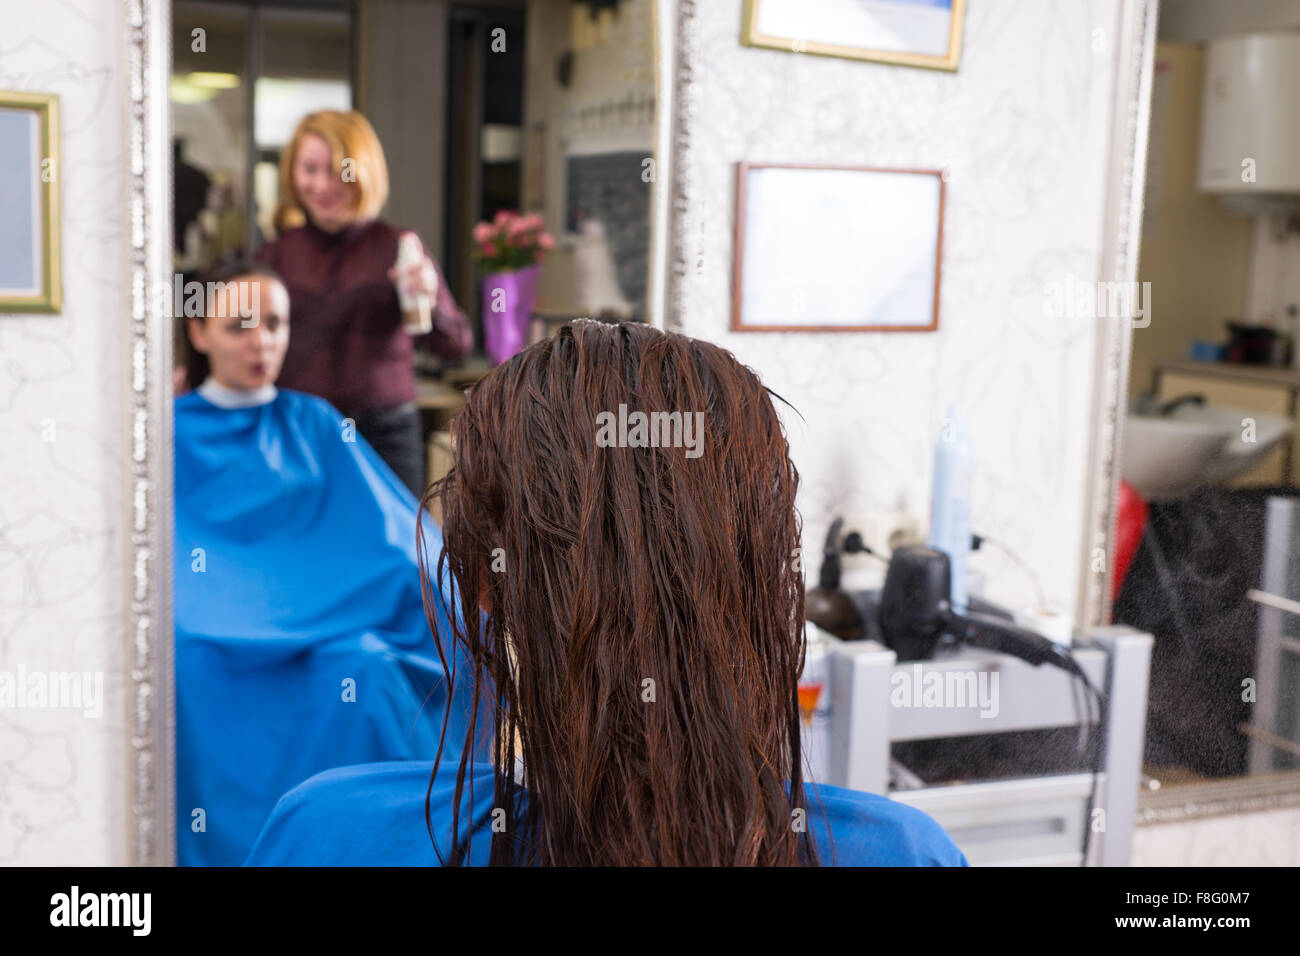 Close Up Rear View of Brunette Woman with Wet Hair Sitting in Chair in Salon with Reflection of Stylist and Woman - Stock Image